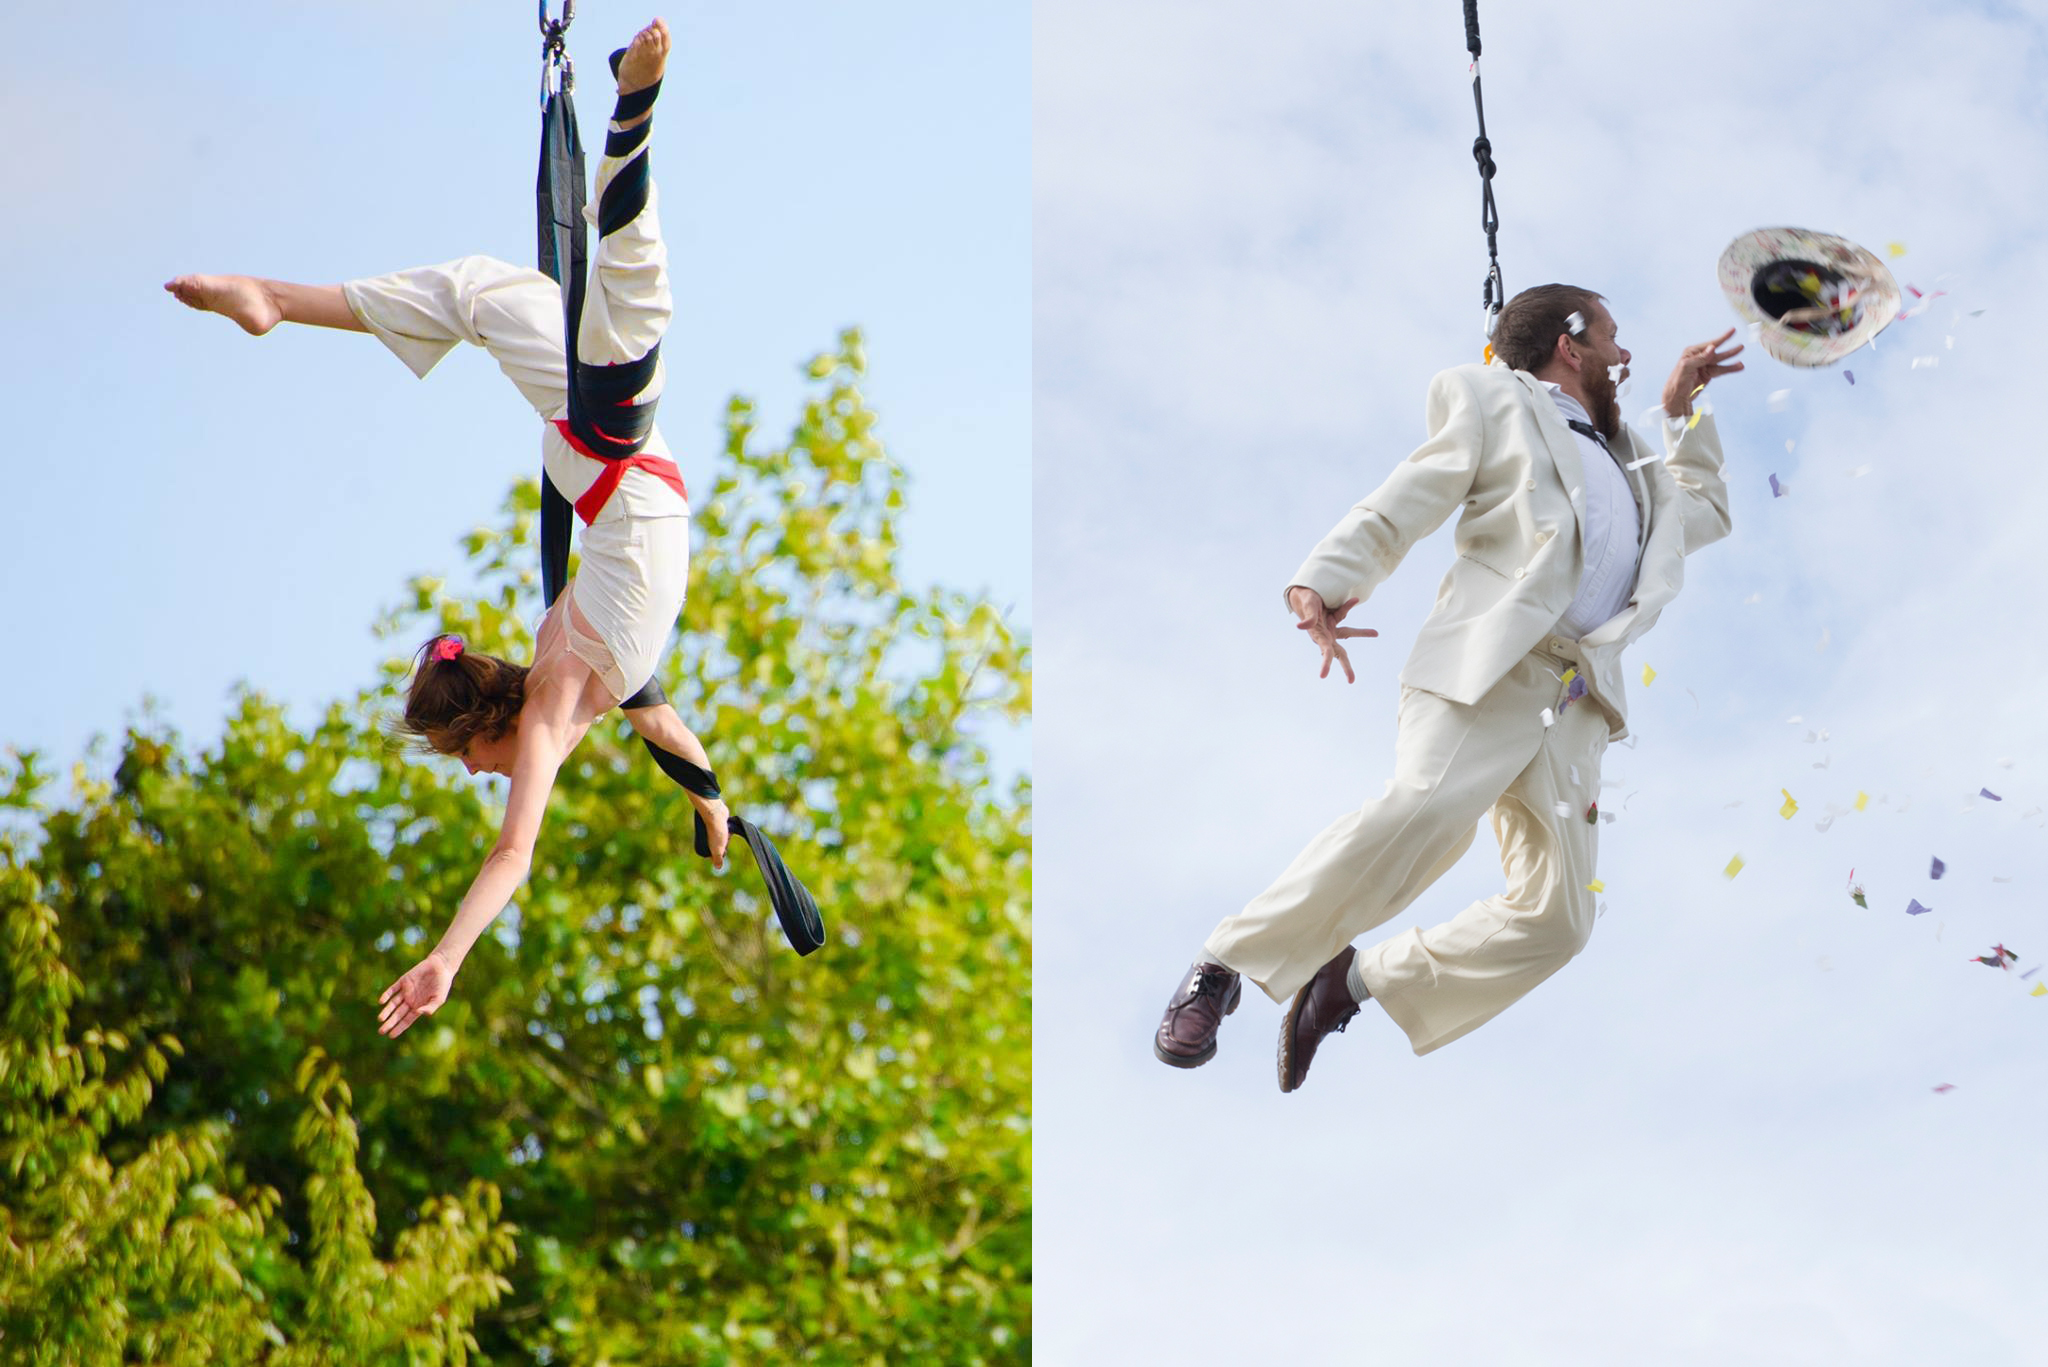 2 photographs: one of circus artist Aislin Mulligan performing aerial with straps. The second: Jamie Beddard flying in the air in a harness, throwing a hat and confetti.